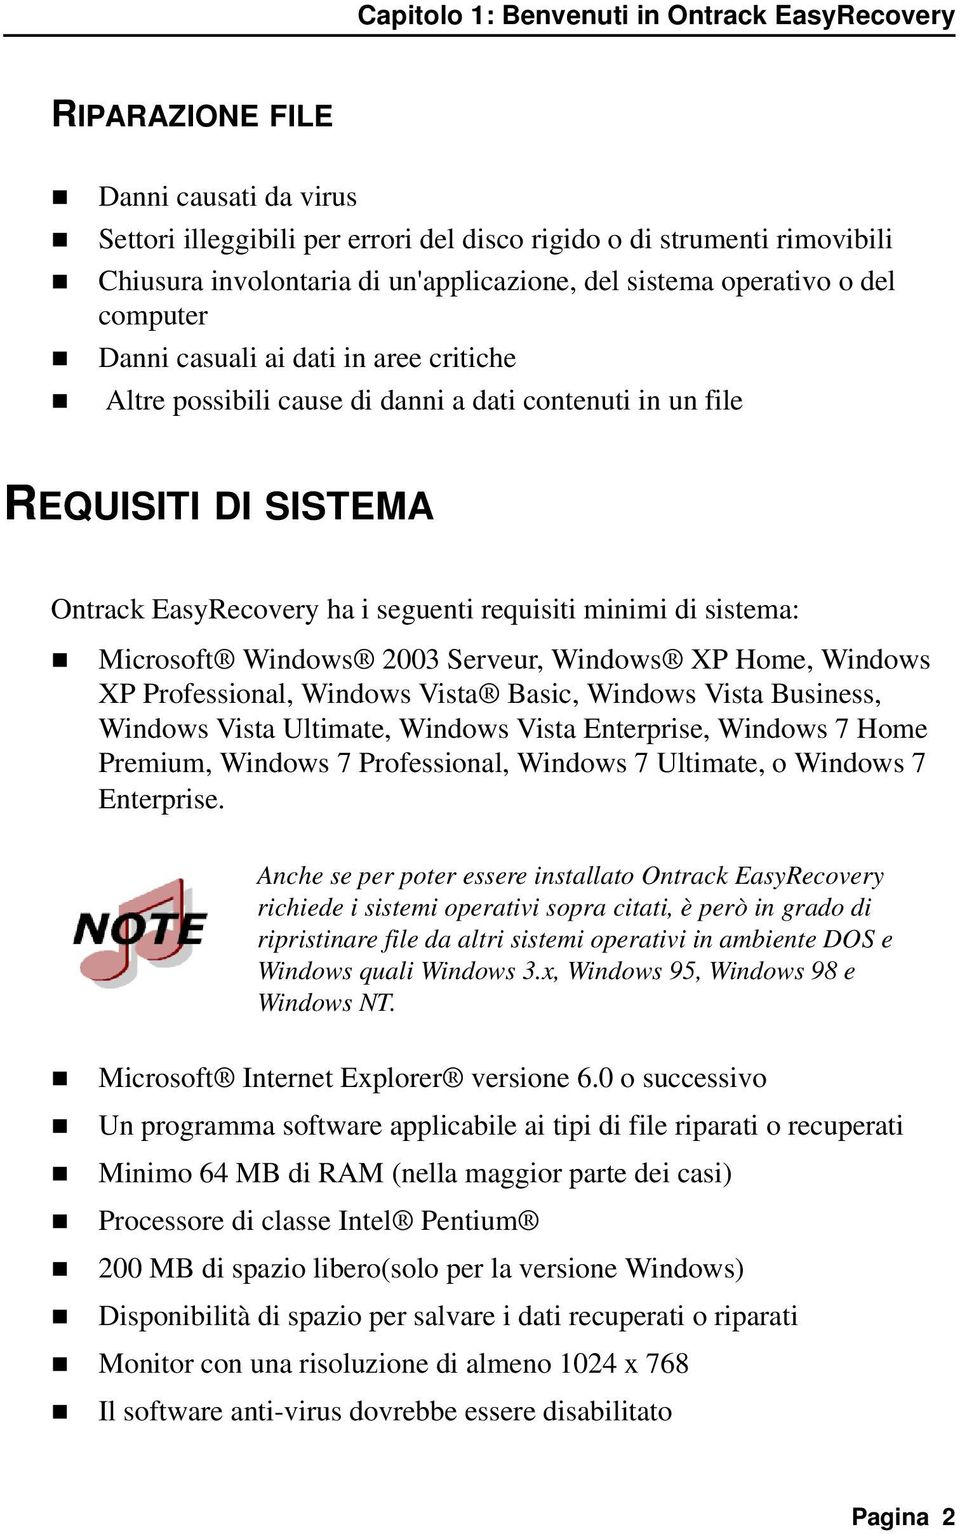 seguenti requisiti minimi di sistema: Microsoft Windows 2003 Serveur, Windows XP Home, Windows XP Professional, Windows Vista Basic, Windows Vista Business, Windows Vista Ultimate, Windows Vista